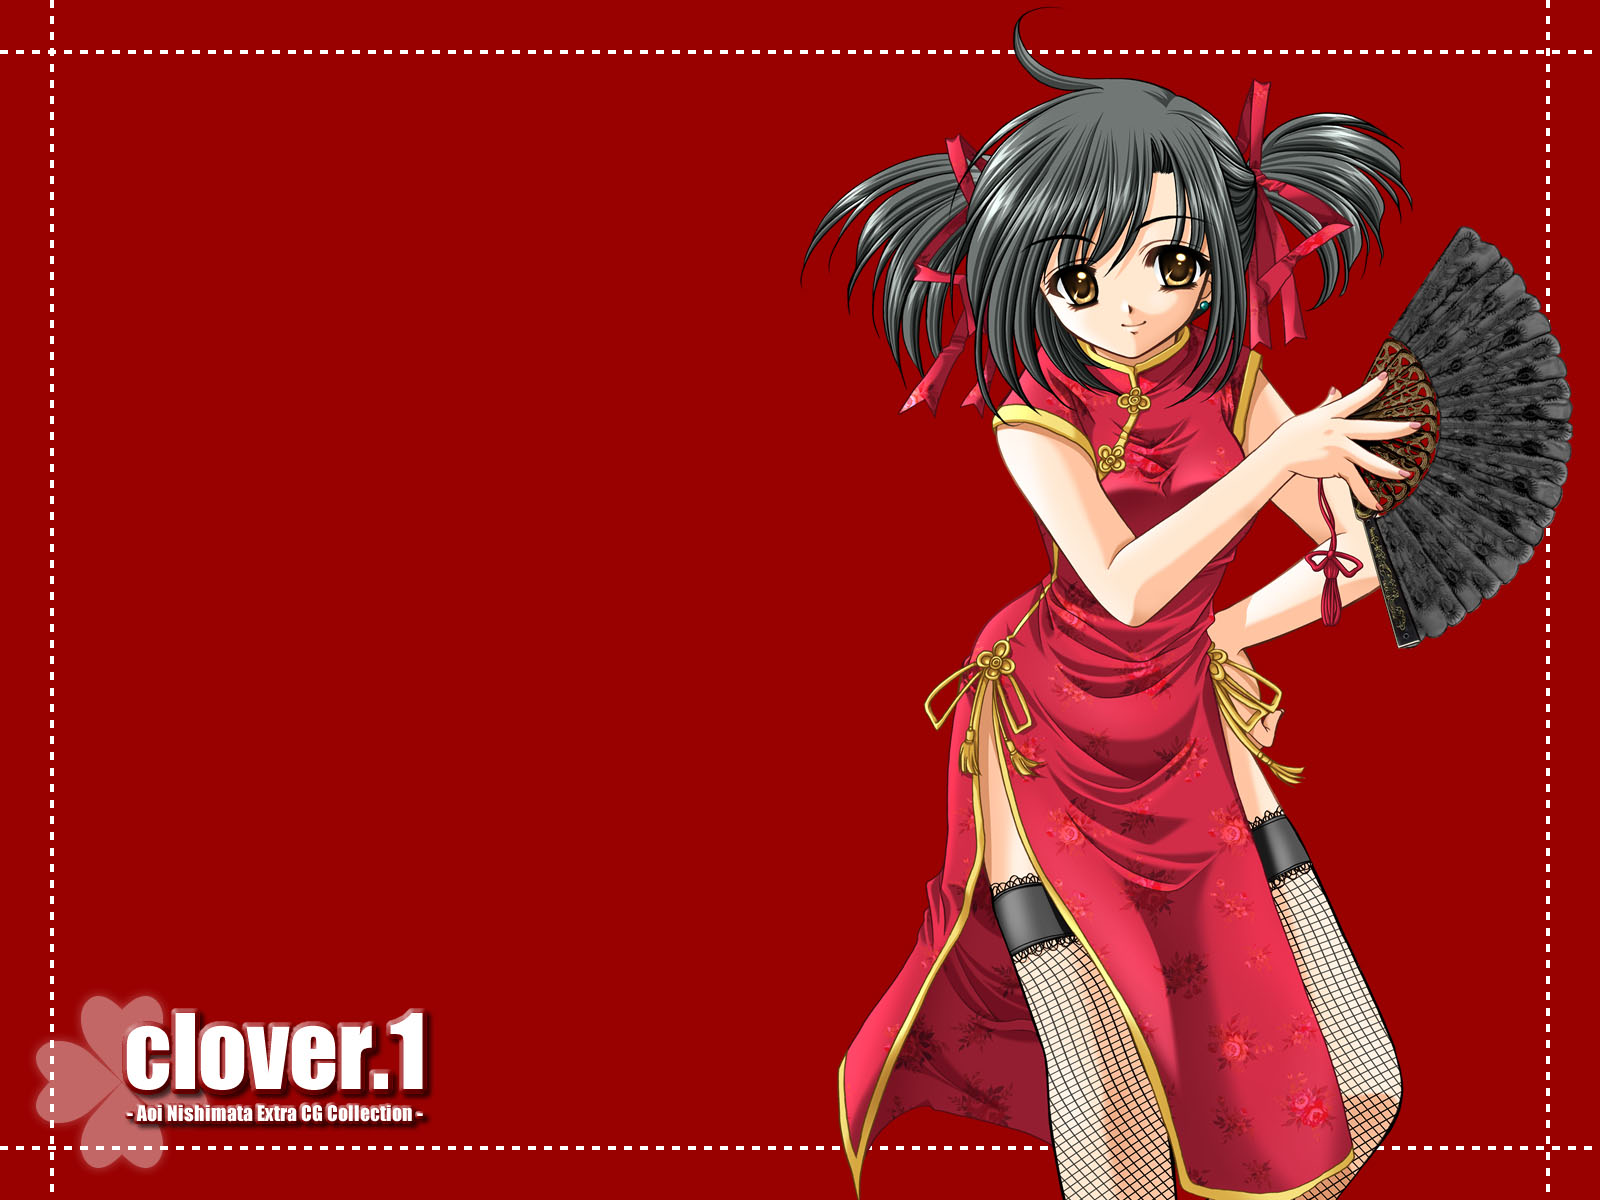 chinese_dress nishimata_aoi red